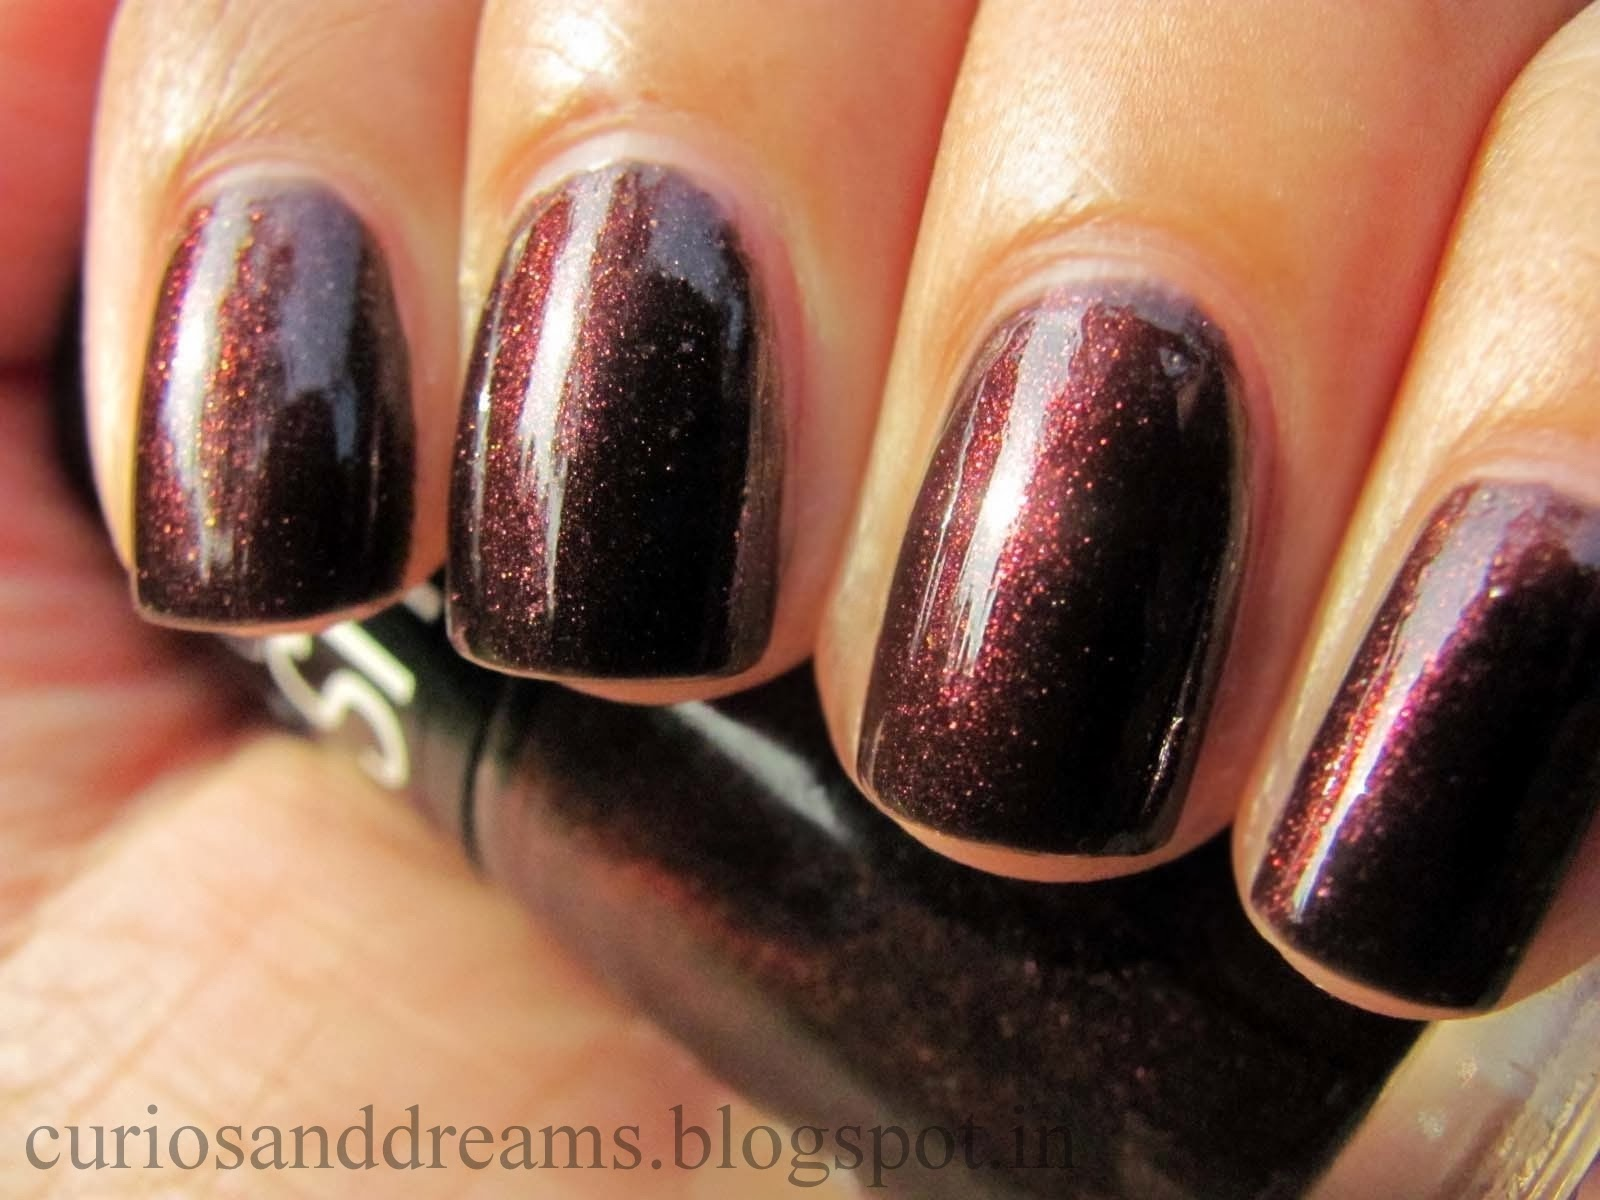 Maybelline Color Show Wine and Dine Review, Maybelline Color Show Wine and Dine NOTD, Maybelline Color Show Wine and Dine swatch